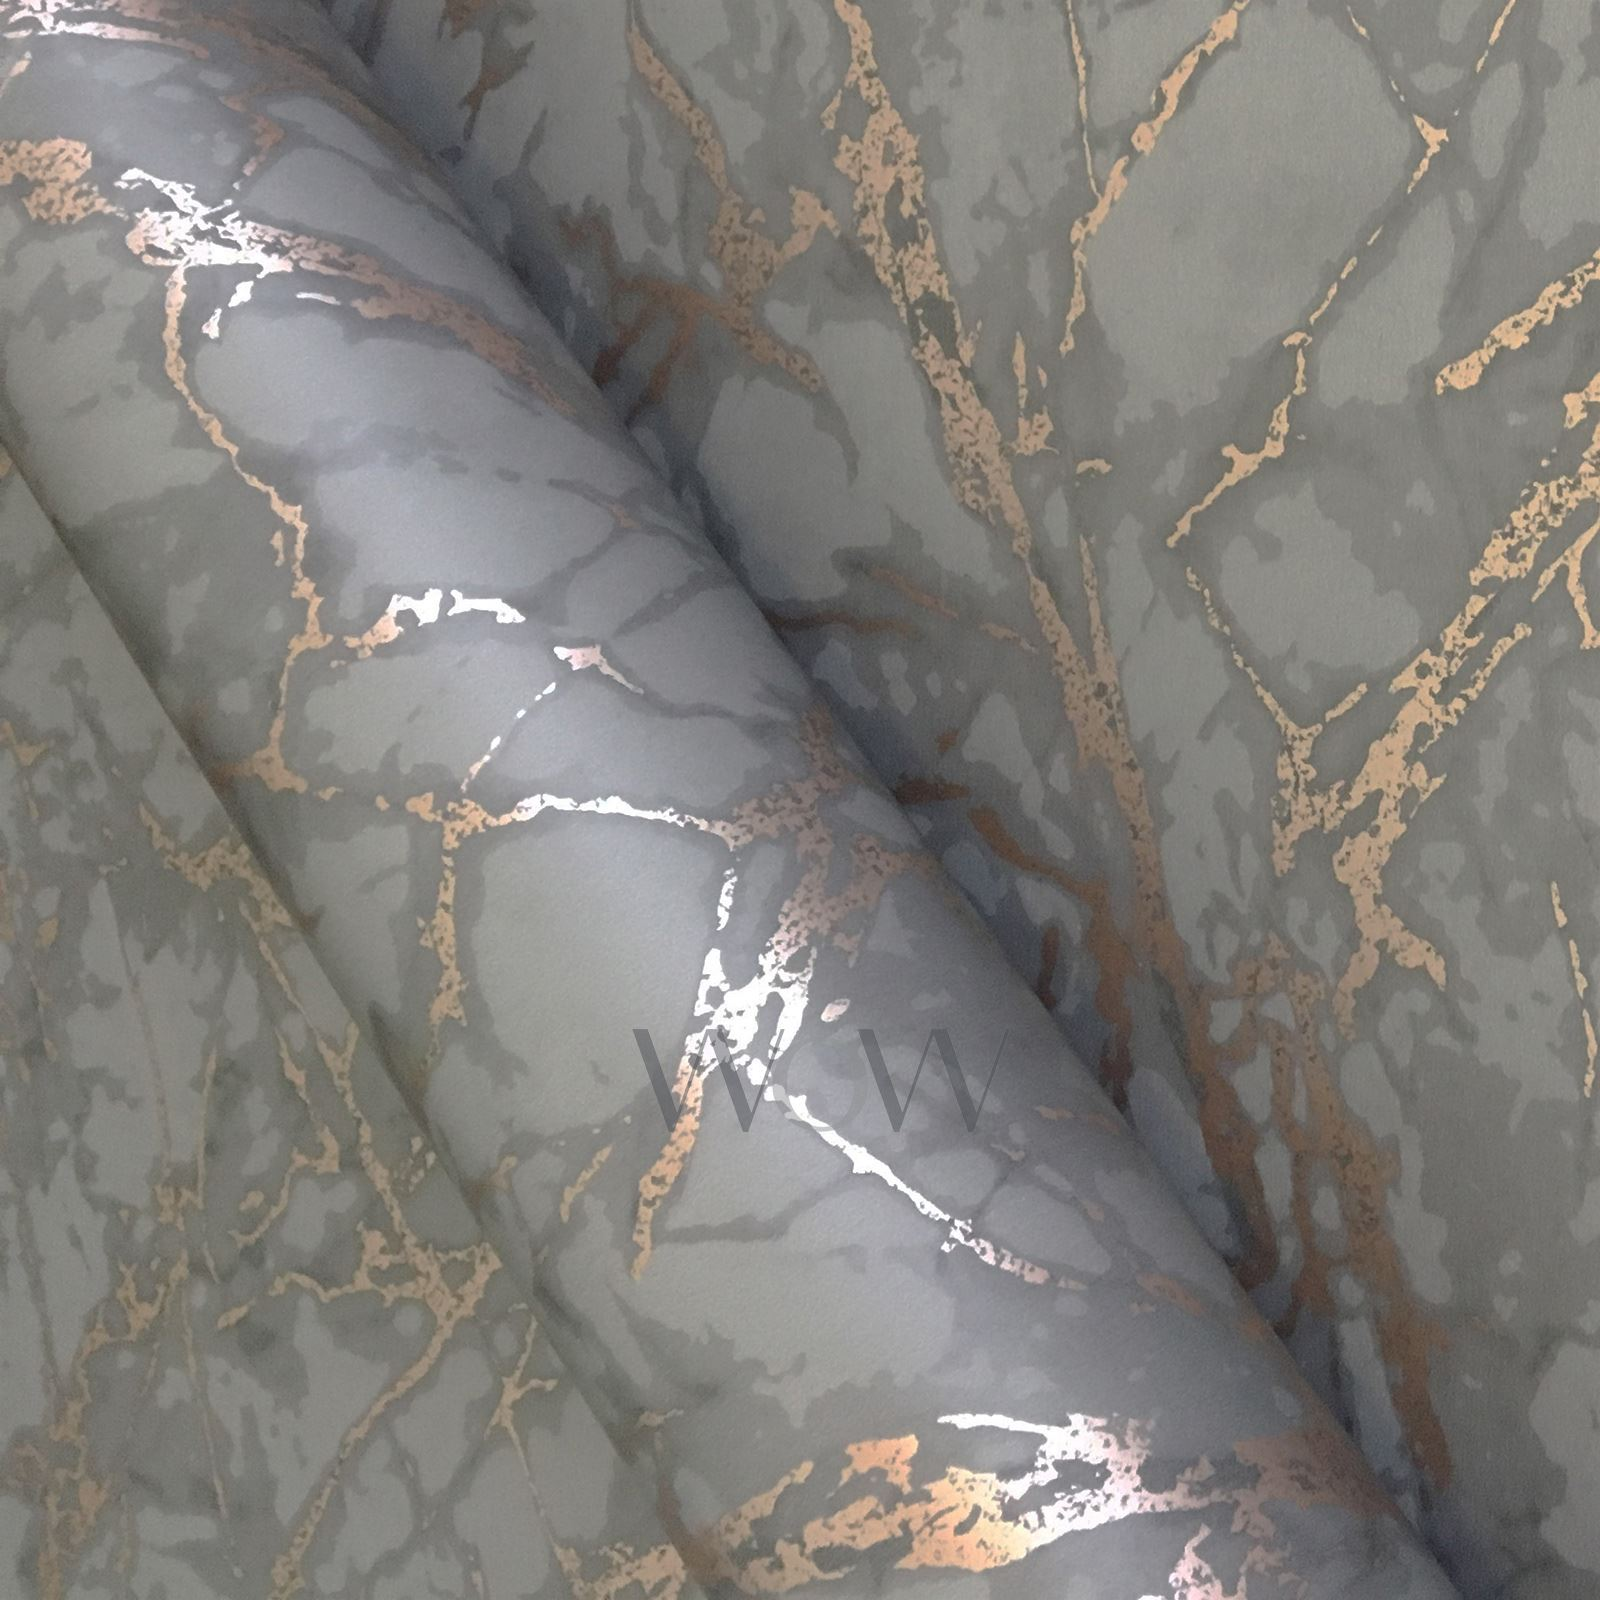 FINE-DECOR-METALLIC-GEOMETRIC-PLAIN-MARBLE-WALLPAPER-ROSE-GOLD-COPPER-SILVER thumbnail 16